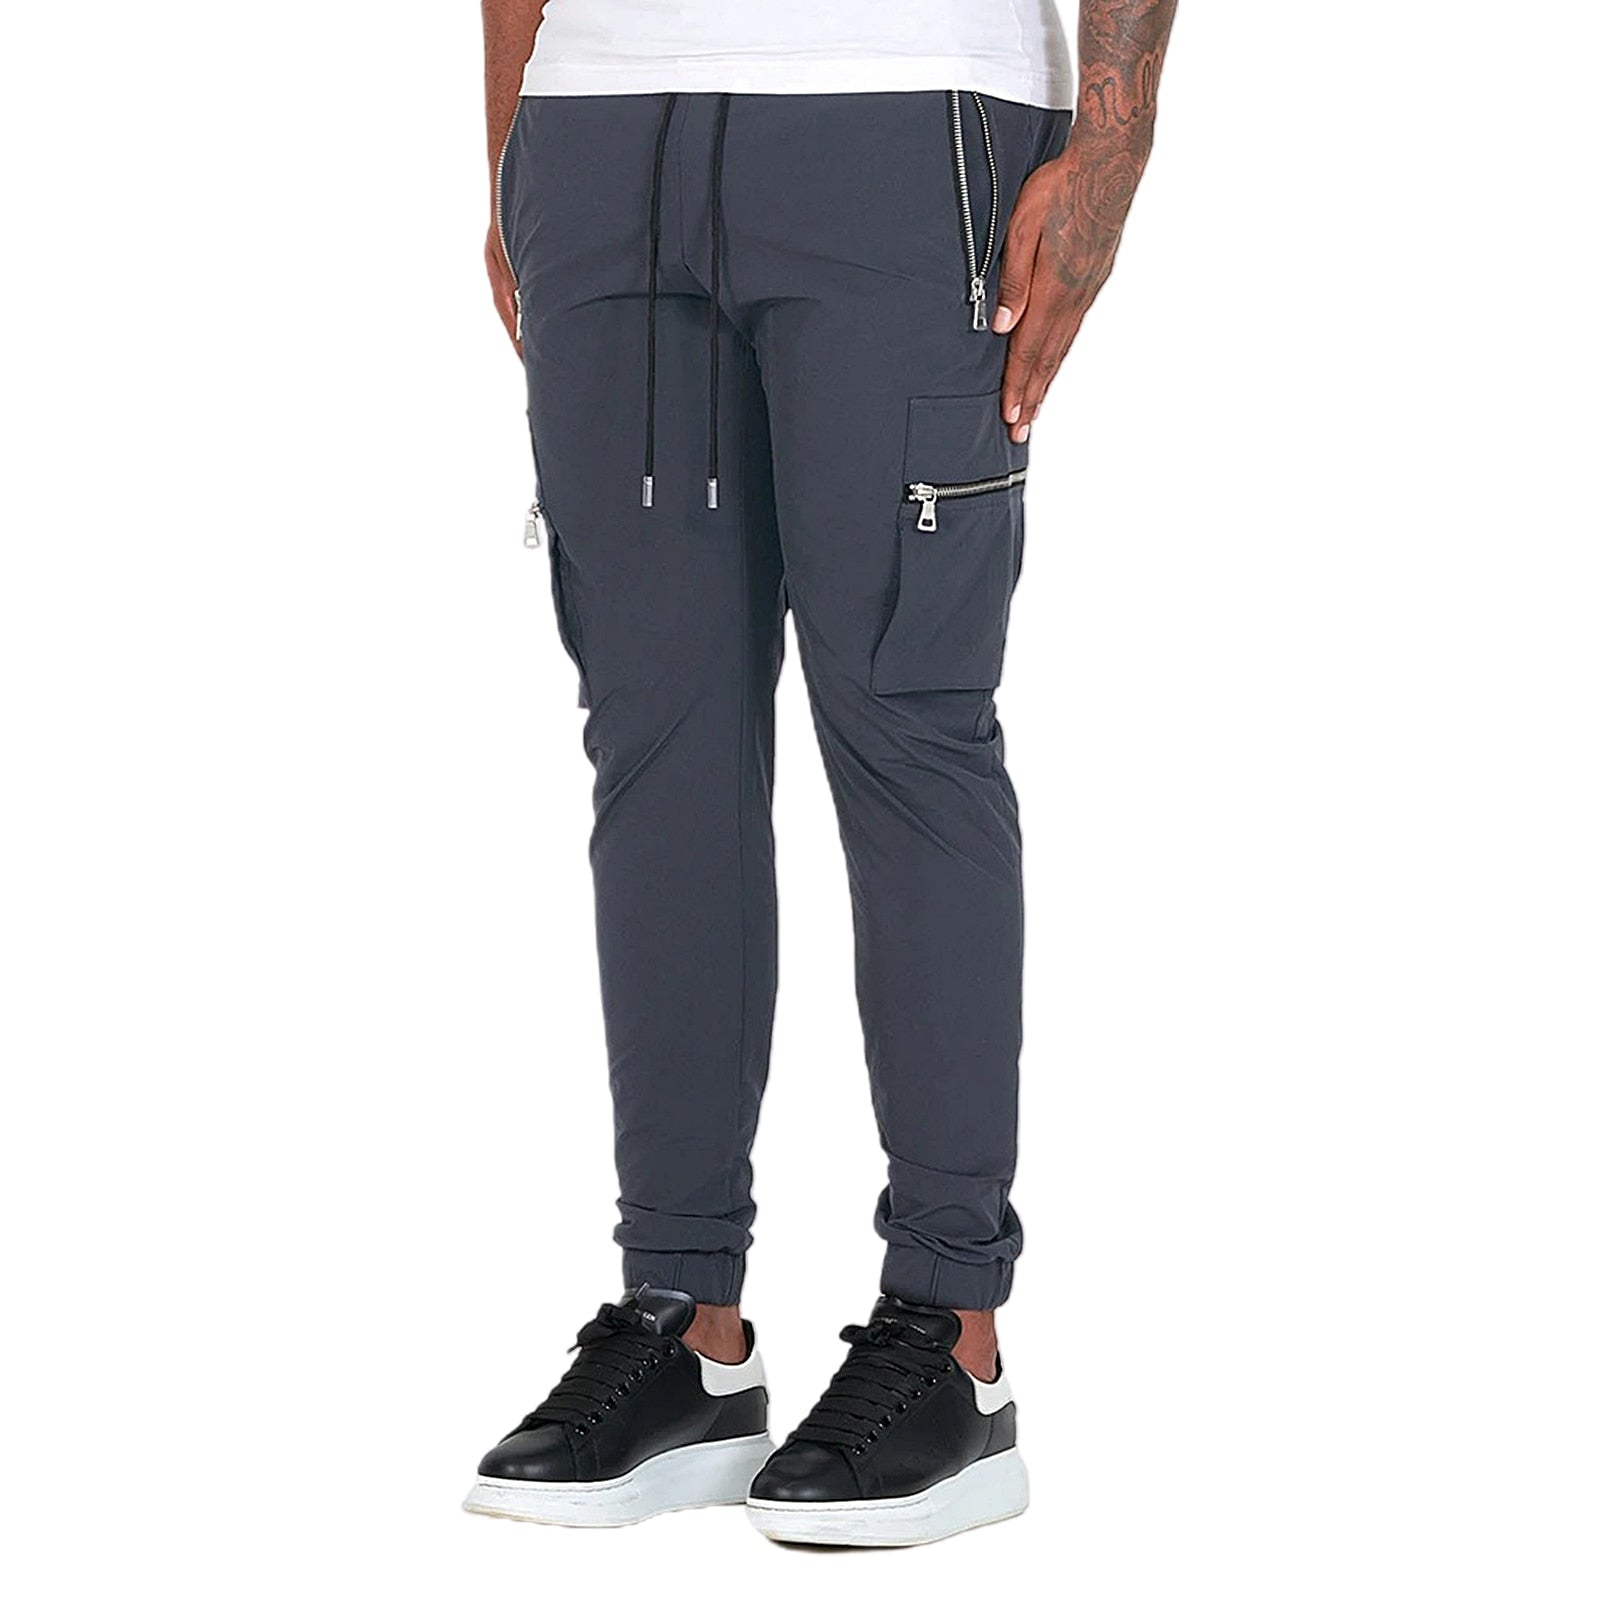 The Zephyr Casual Pants